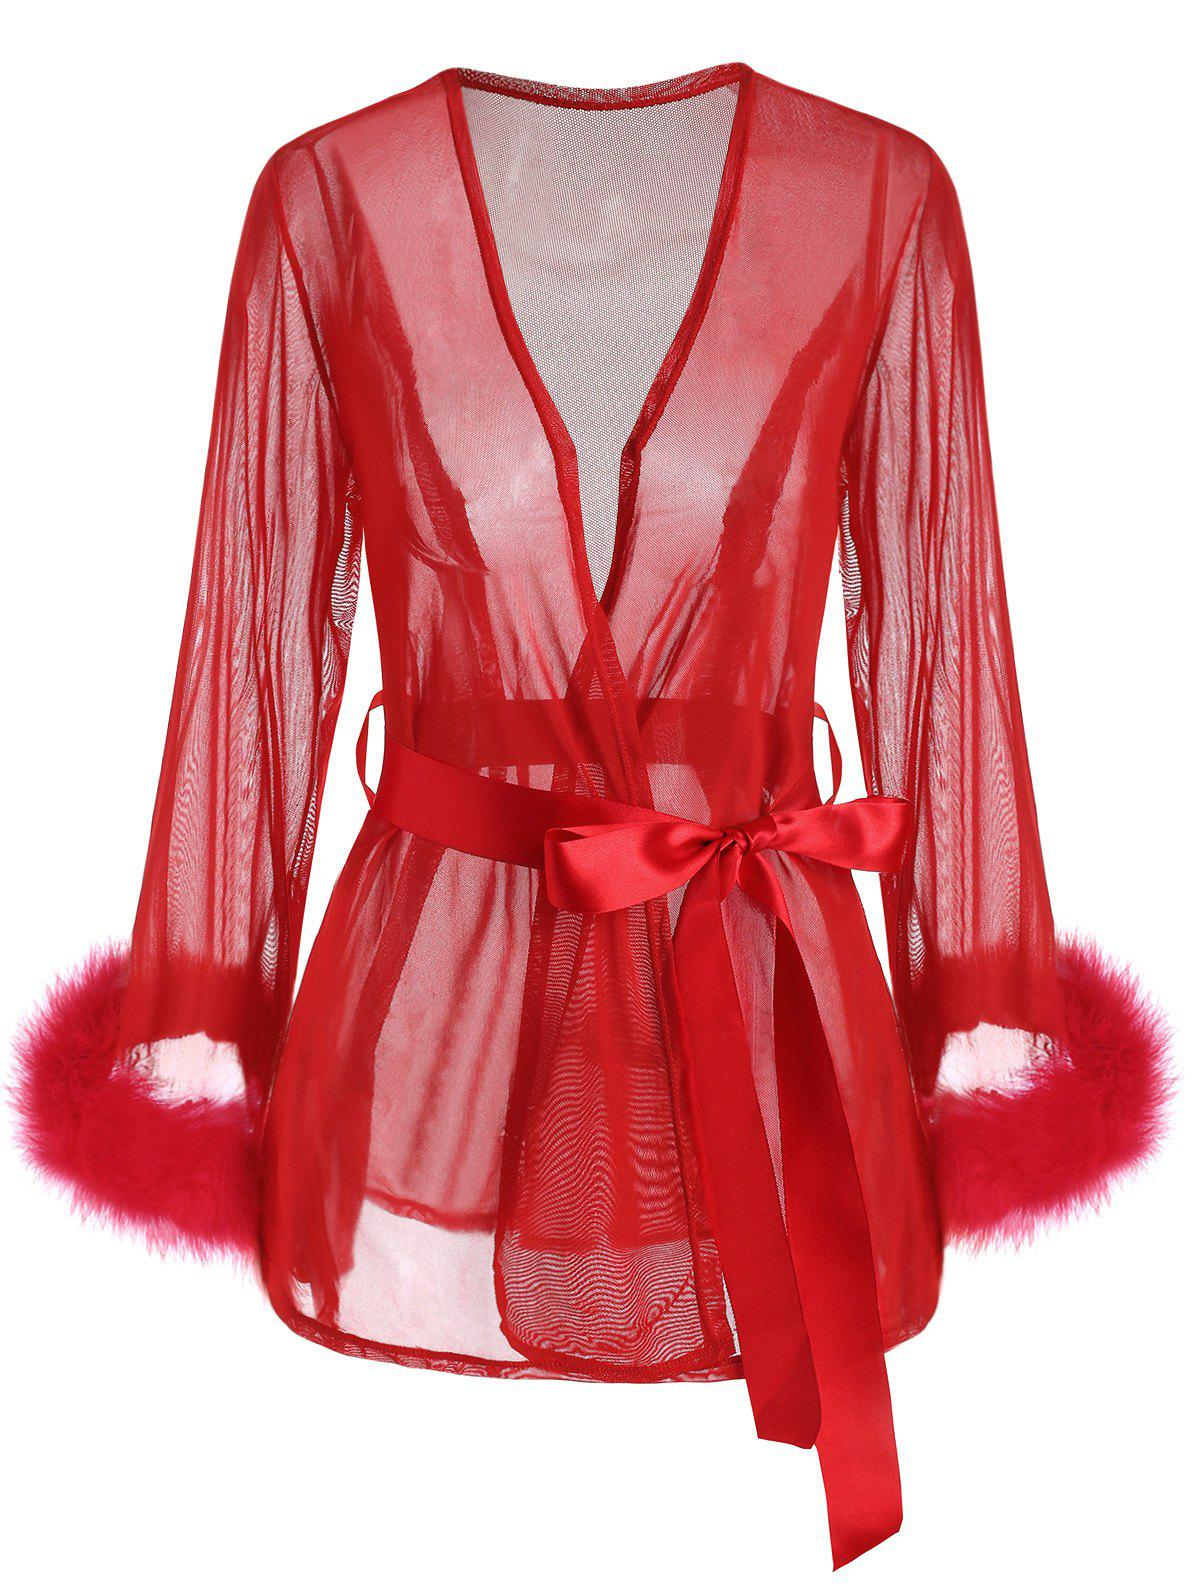 Plus Size See Thru Faux Fur Cuffs Belted Lingerie Robe - RED 3XL